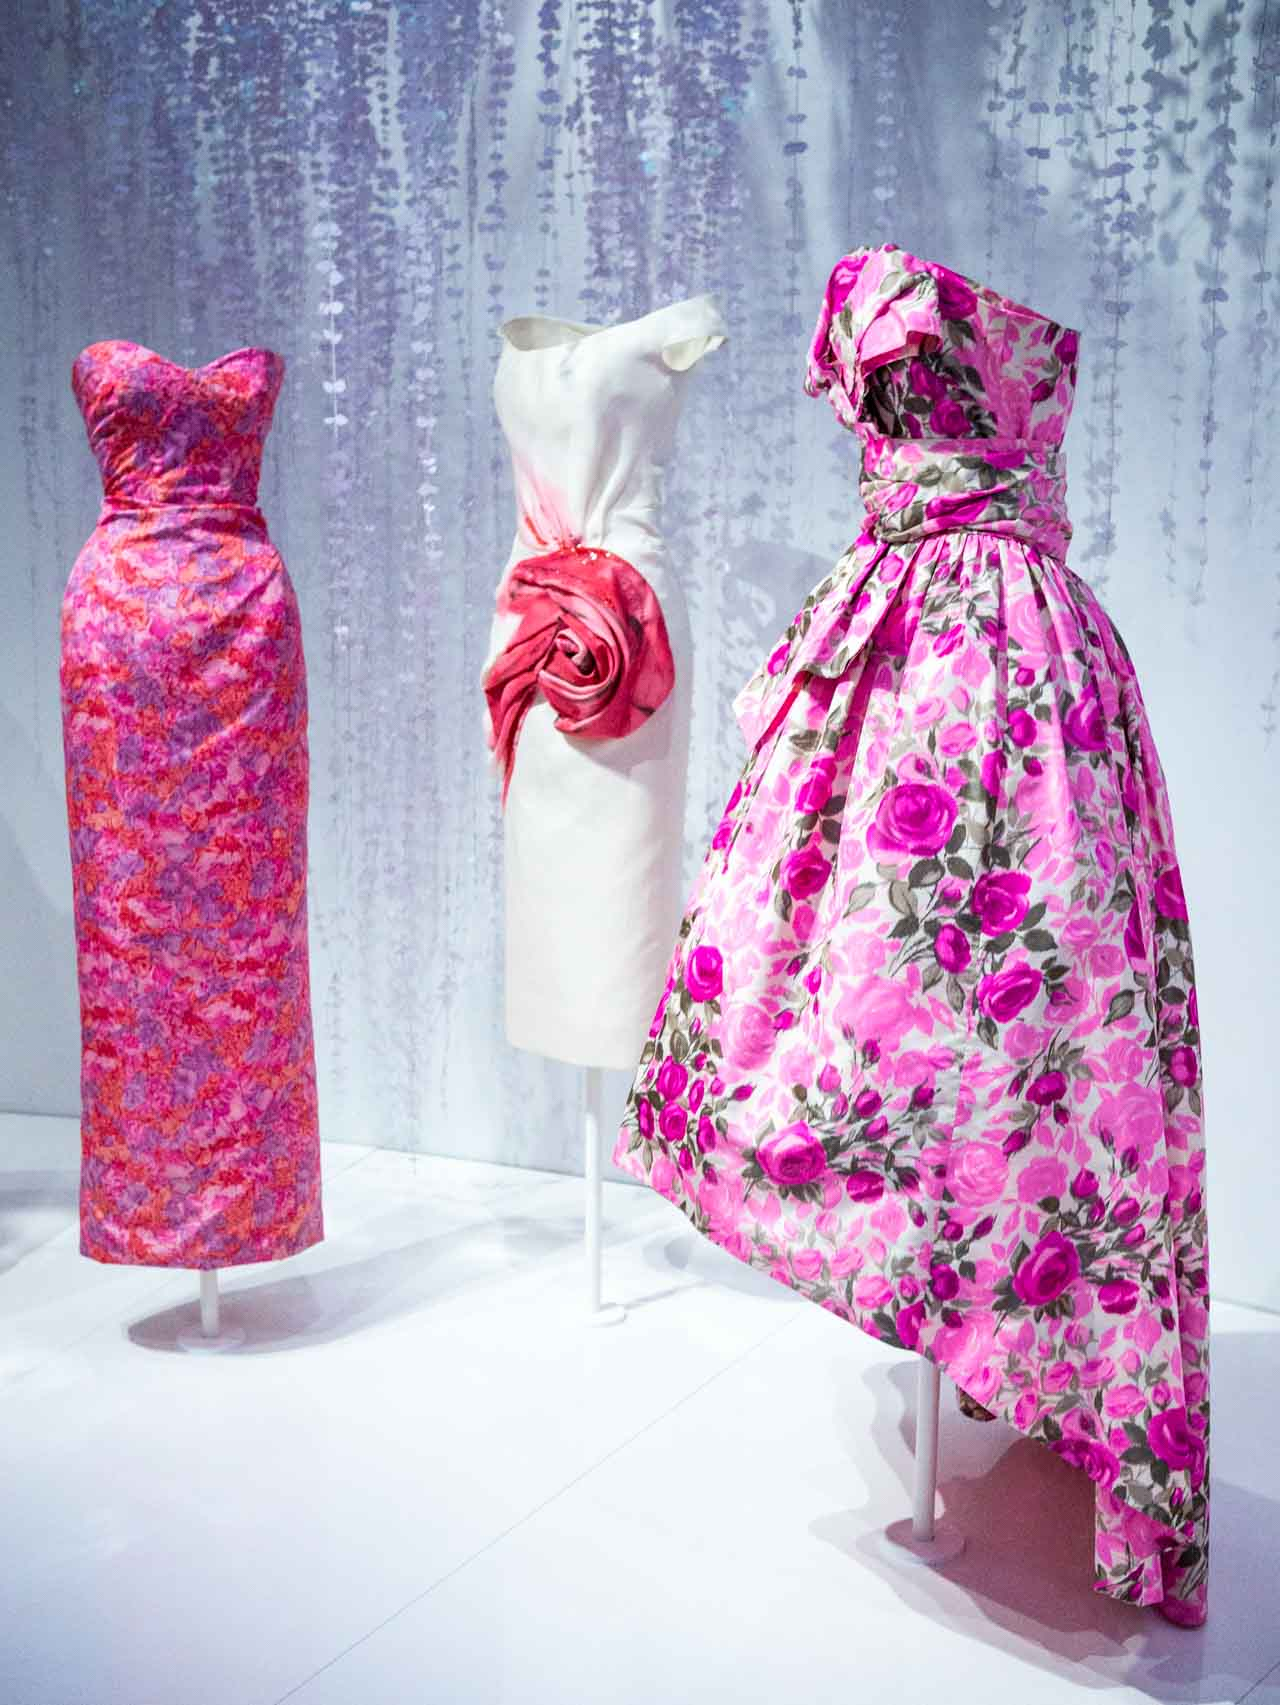 Designs inspired by Dior's love of the garden. Christian Dior: Designer of Dreams. Taken at the V&A exhibition © The Cutting Class, 2019.